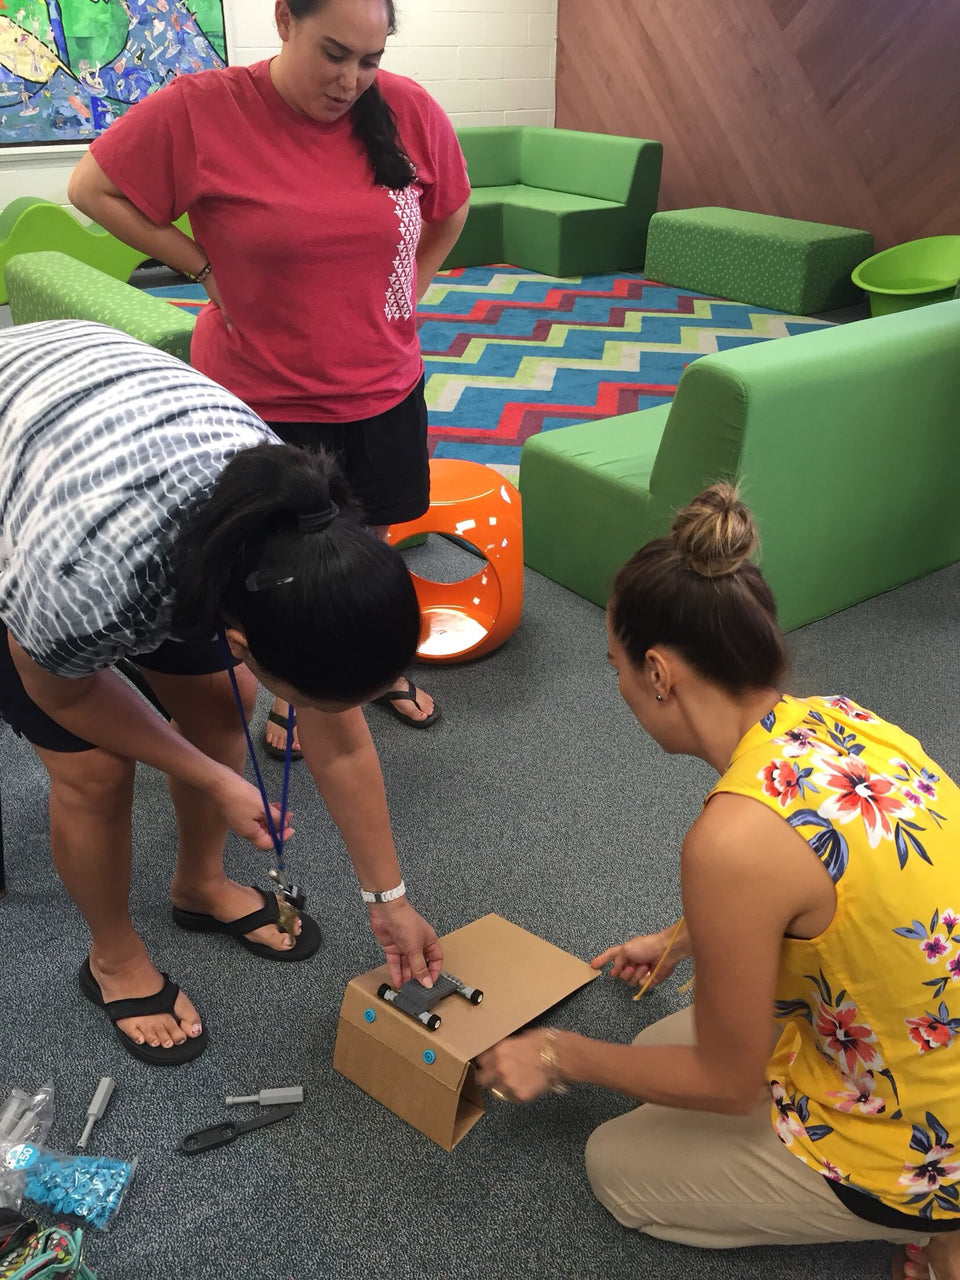 Makedo cardboard construction teacher training - building ramps